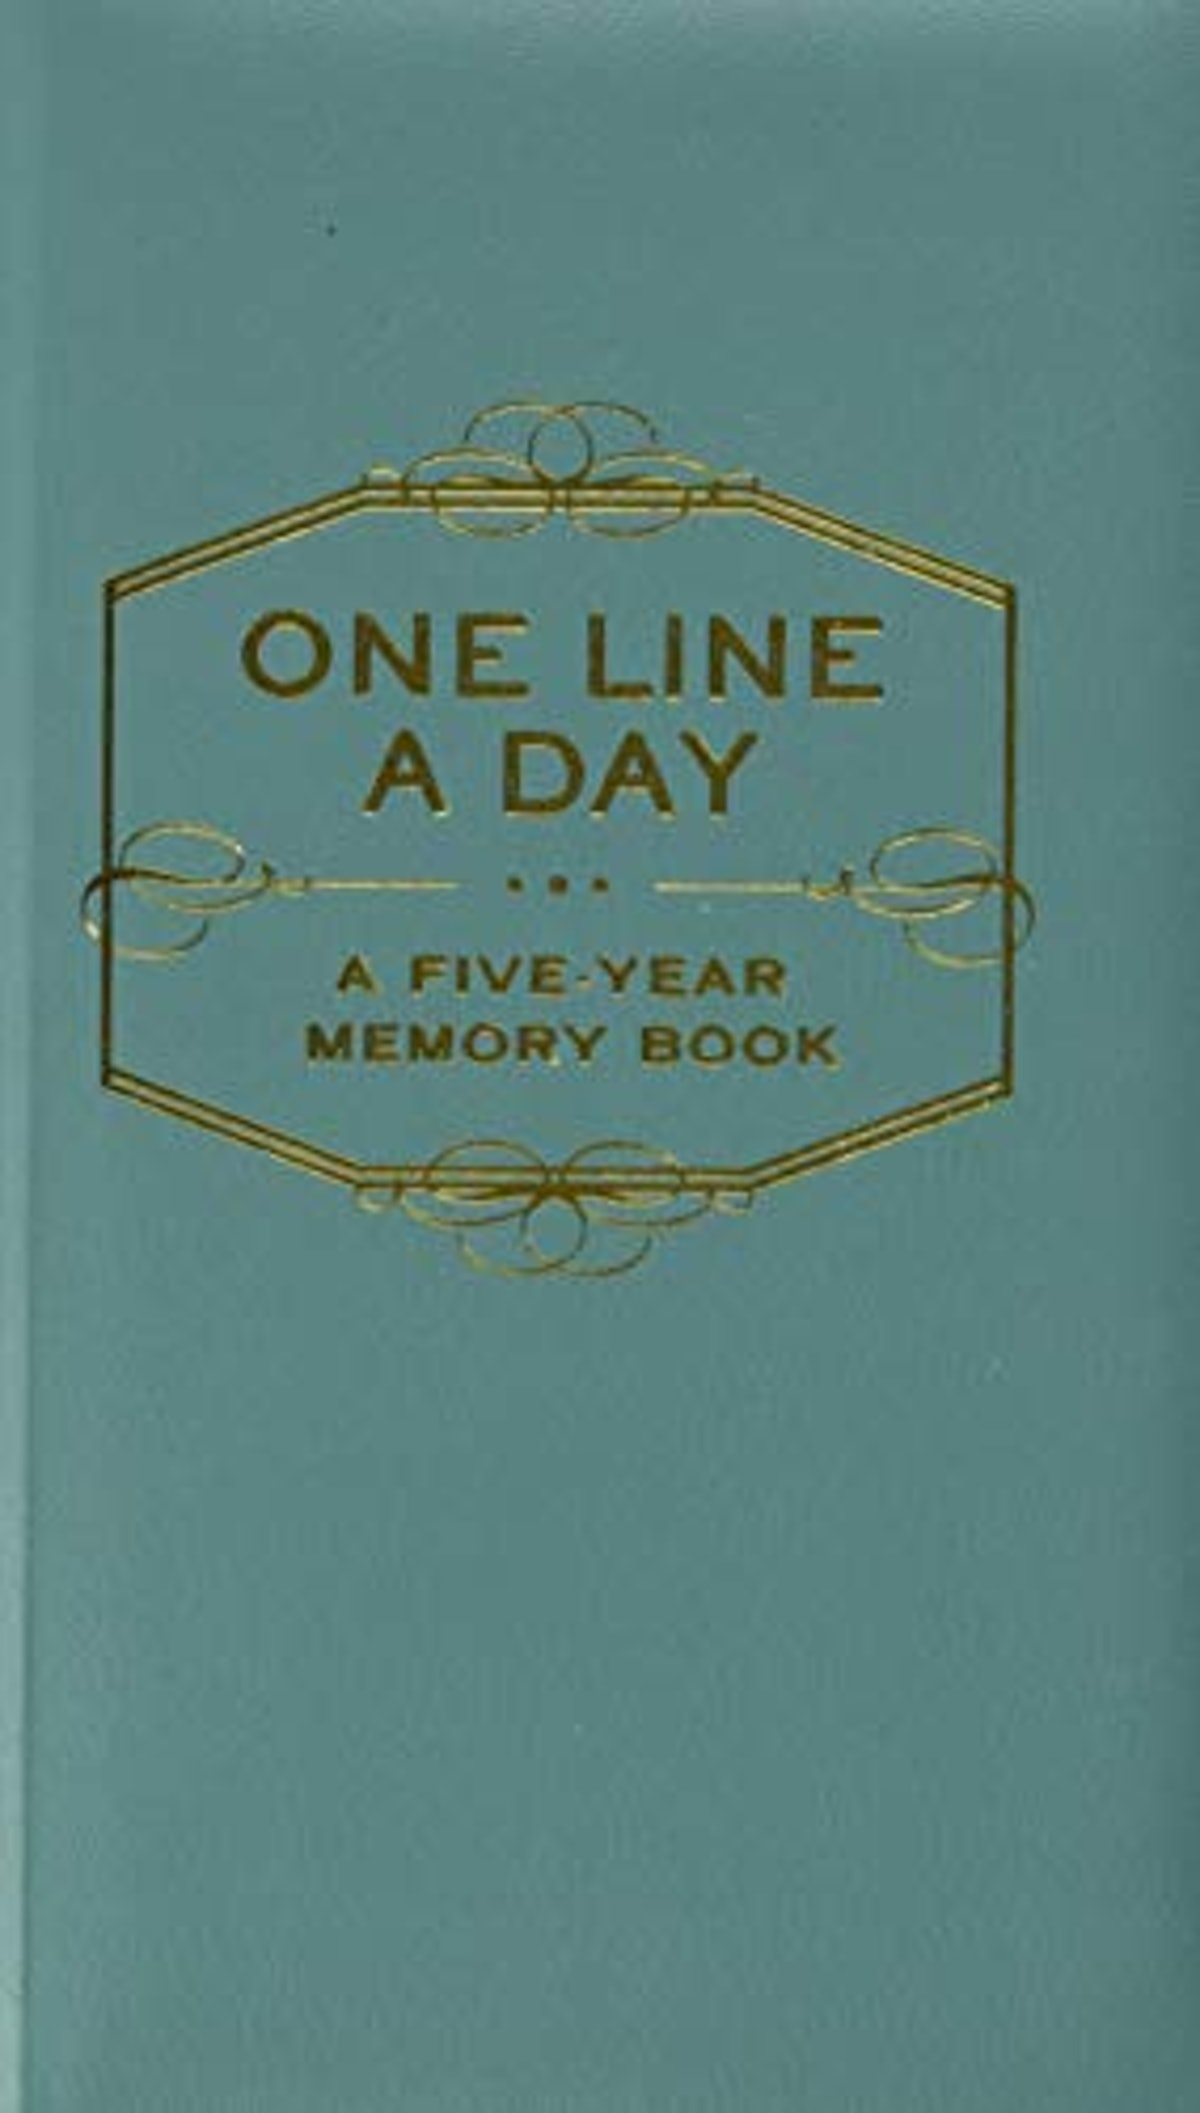 One Line A Day: A Five-Year Memory Book (5 Year Journal, Daily Journal